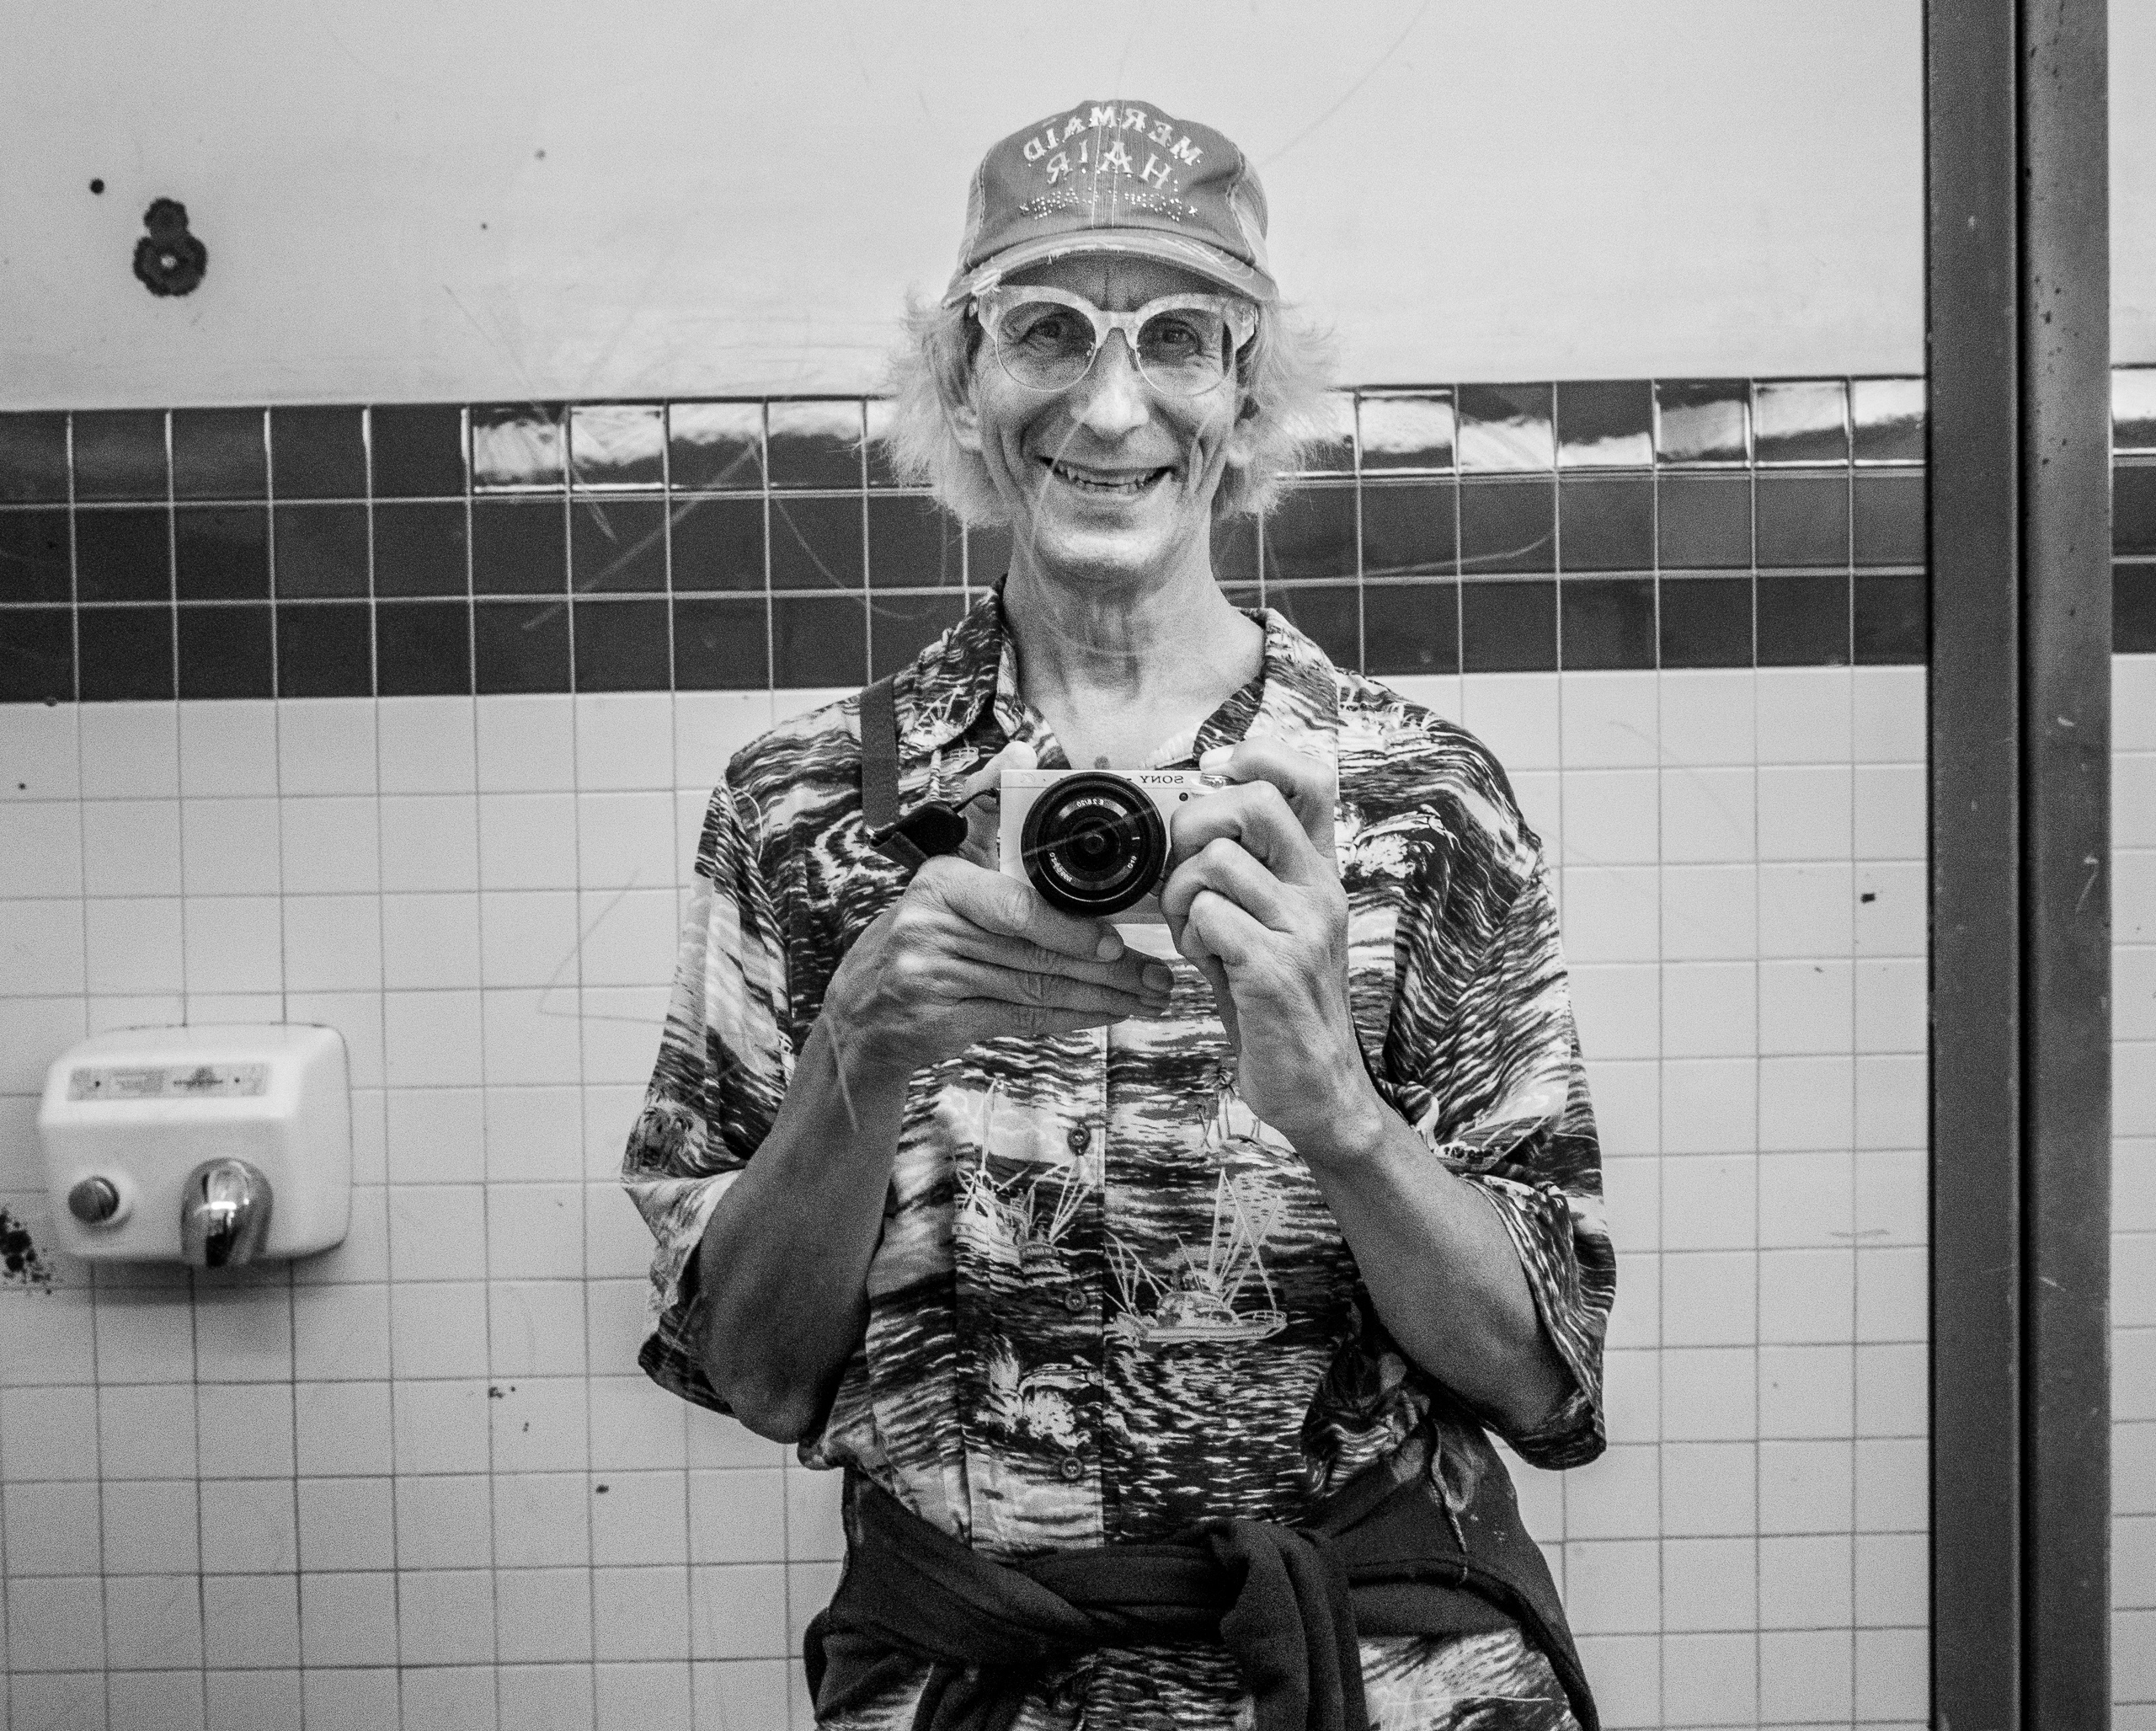 Glenn Zucman taking a selfie in the boy's room mirror at the Catalina Express terminal on Catalina Island, Los Angeles County, California